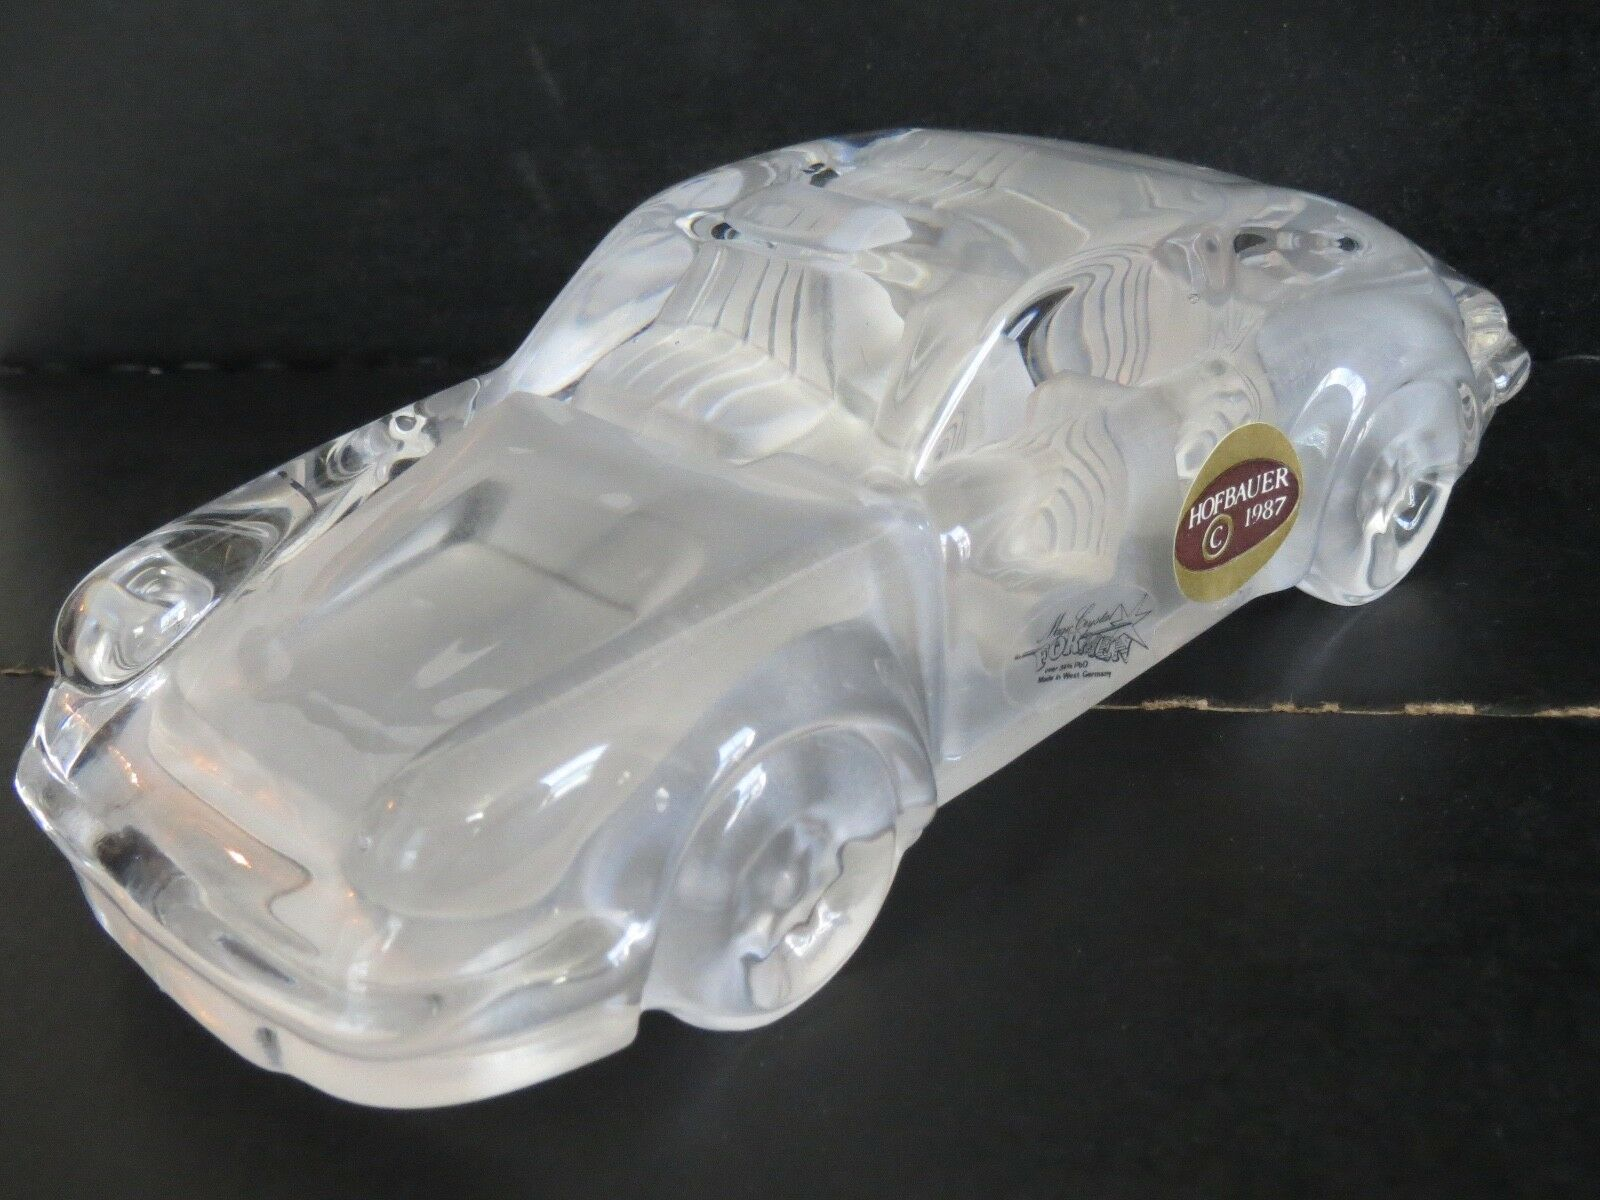 HOFBAUER 1987 Magic Crystal PORSCHE CAR Figurine 24% PbO Made in West Germany